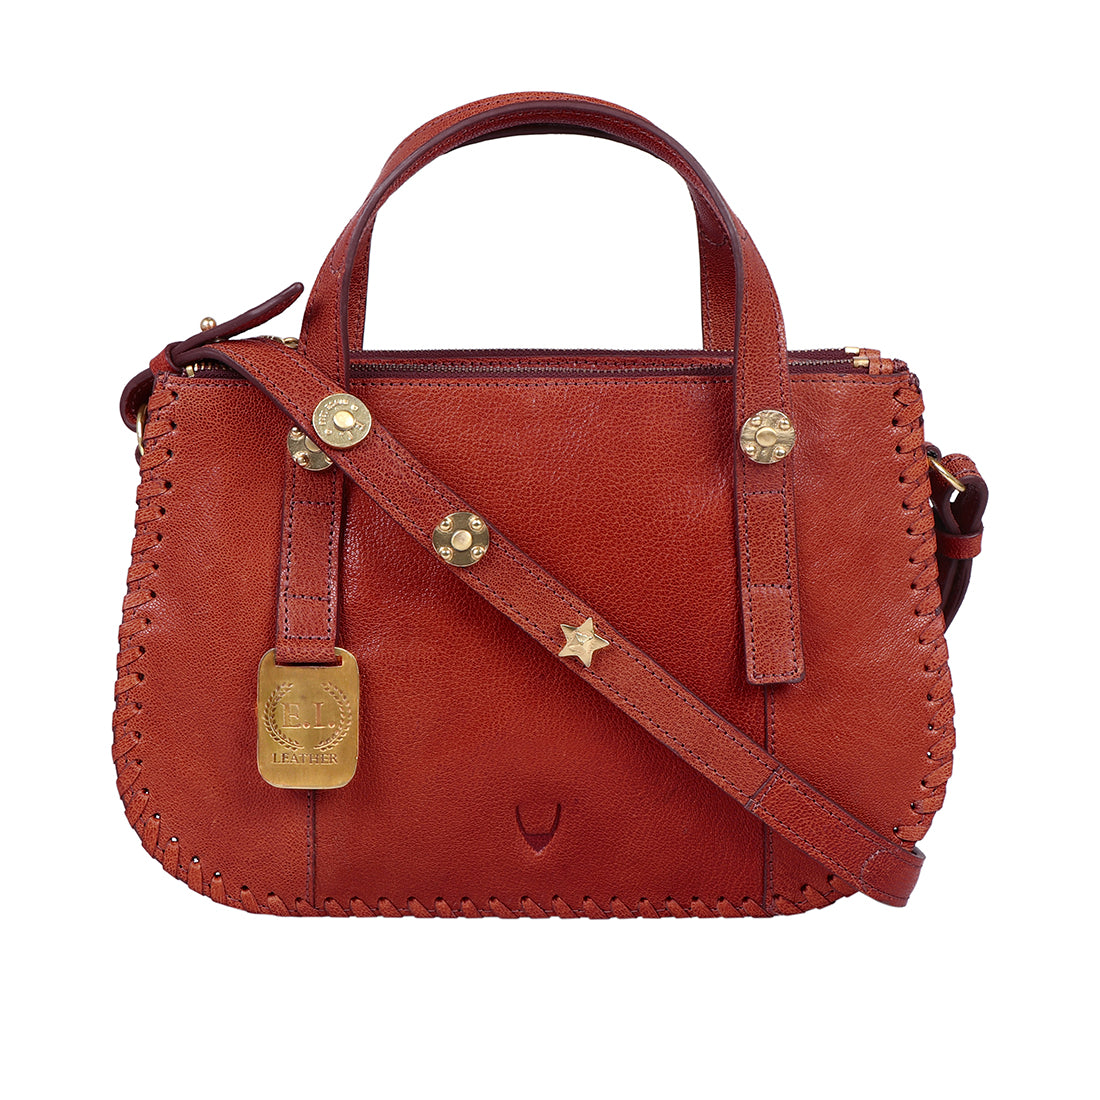 HOPE 02 SATCHEL